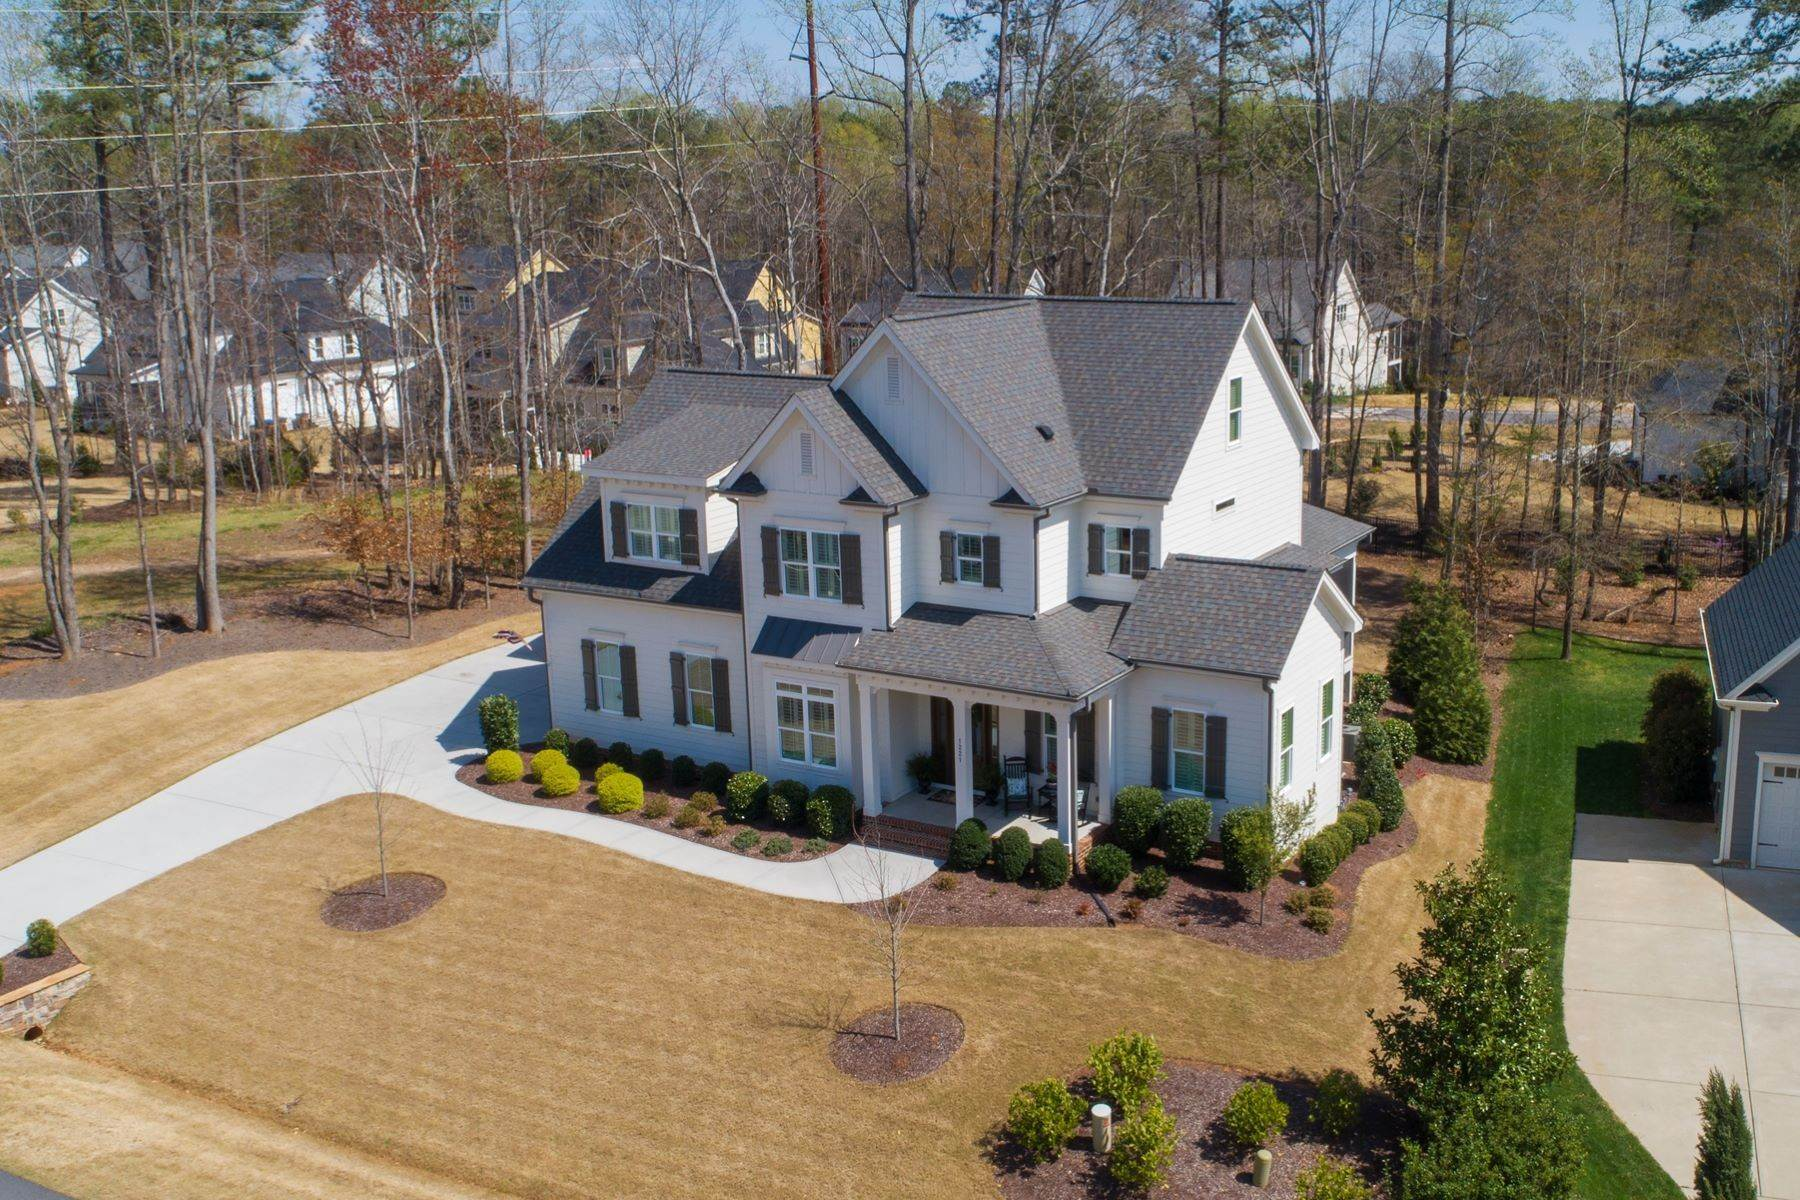 Single Family Homes for Sale at Luxury home in Traditions 1221 Reservoir View Lane Wake Forest, North Carolina 27587 United States